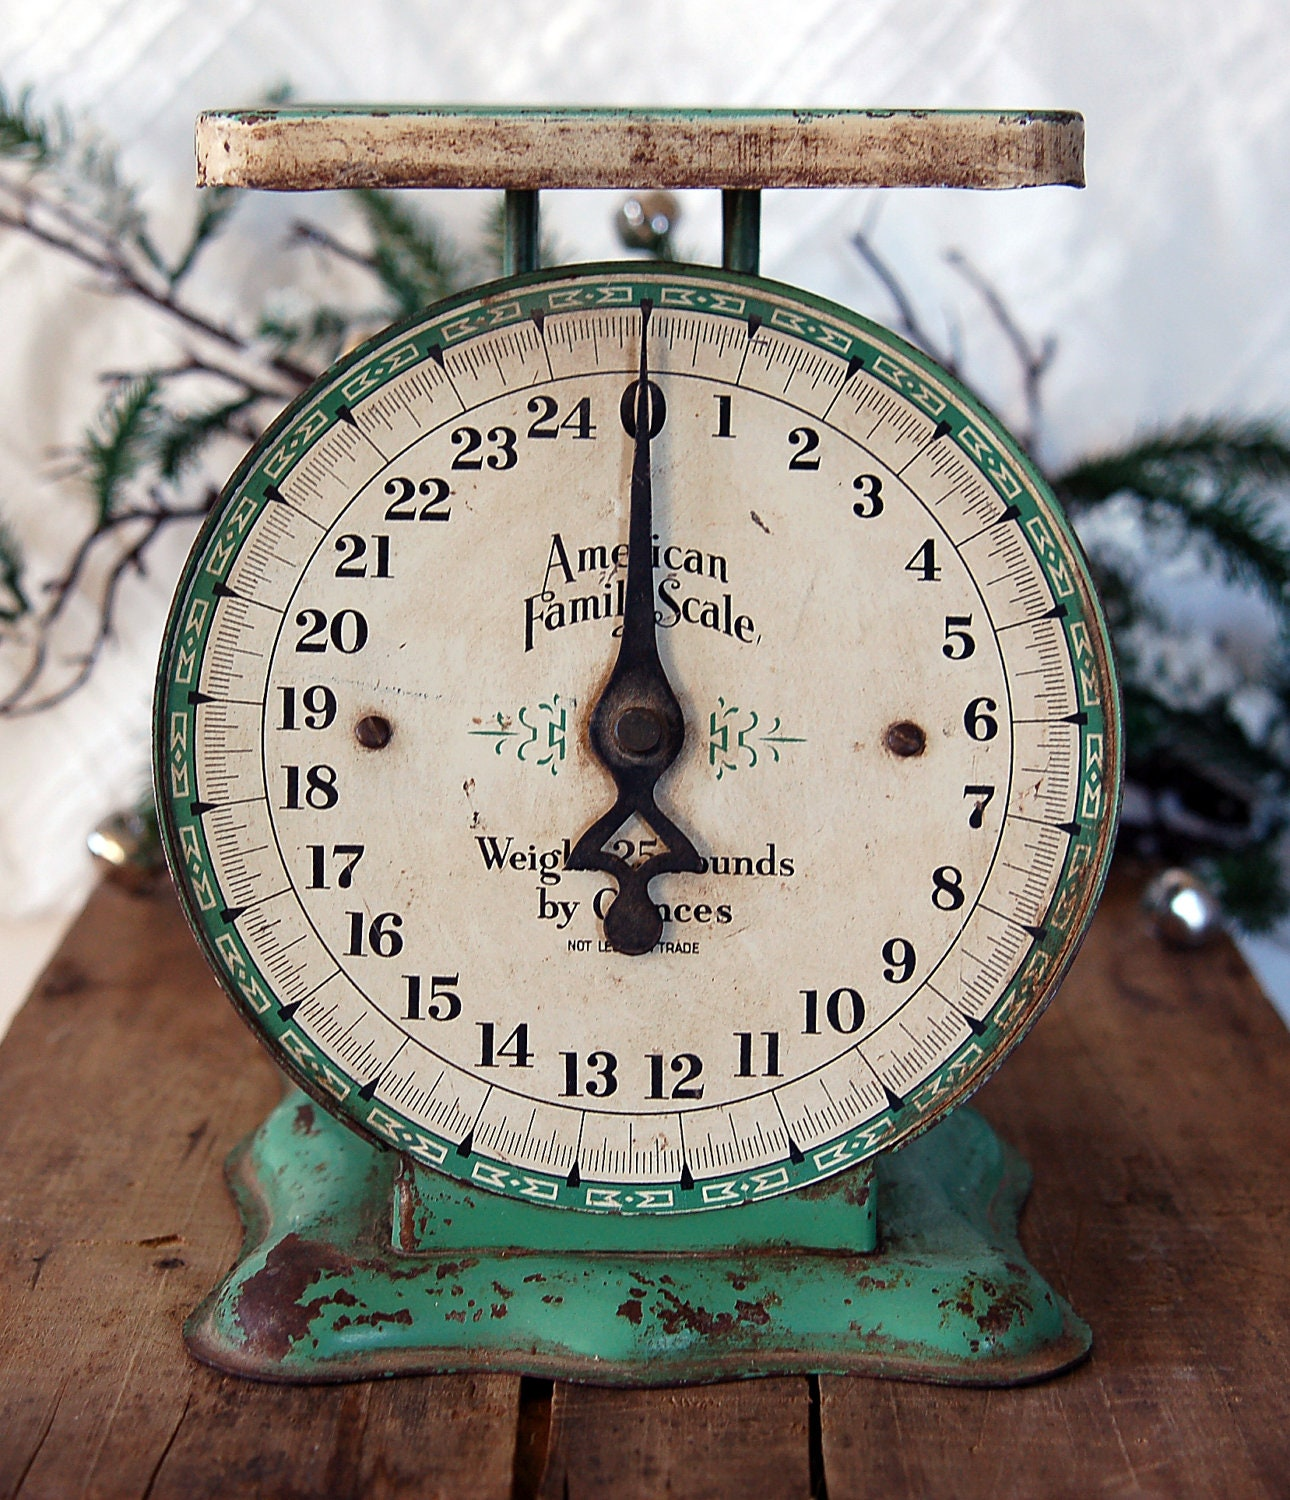 Antique Kitchen Scale: Vintage American Family 25 LB Kitchen Scale In Green